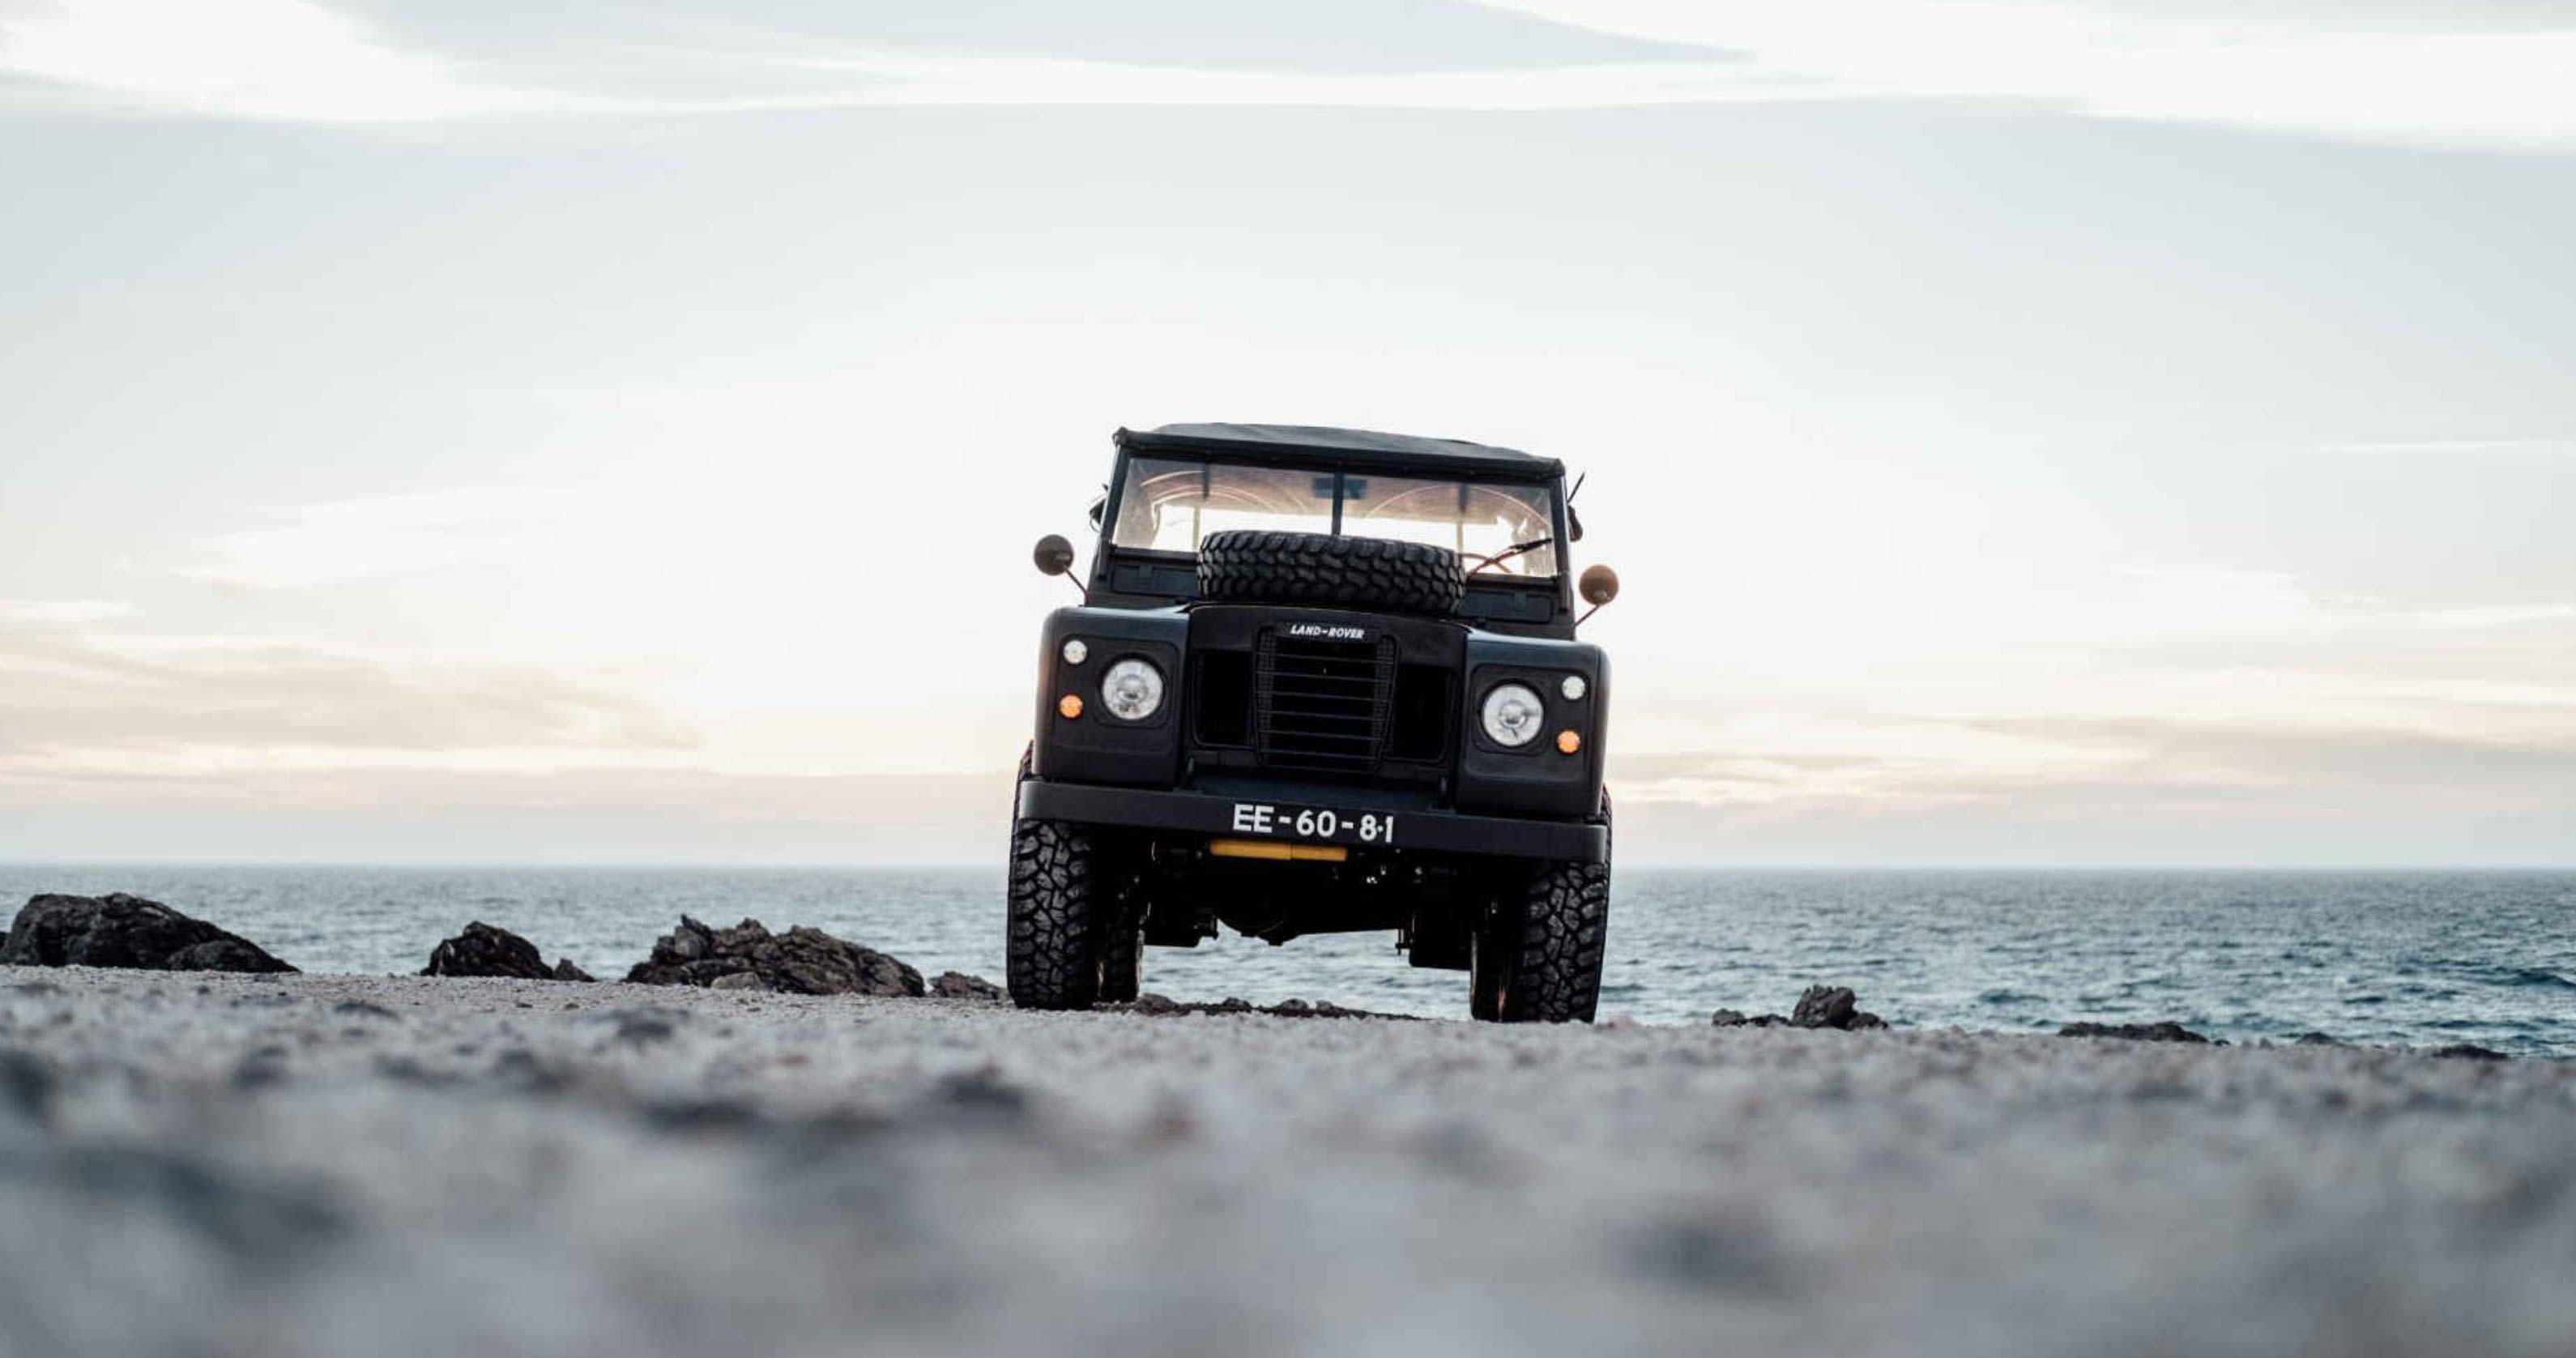 The Matte Black 1979 Land Rover Series III Built For Any Beach Trip